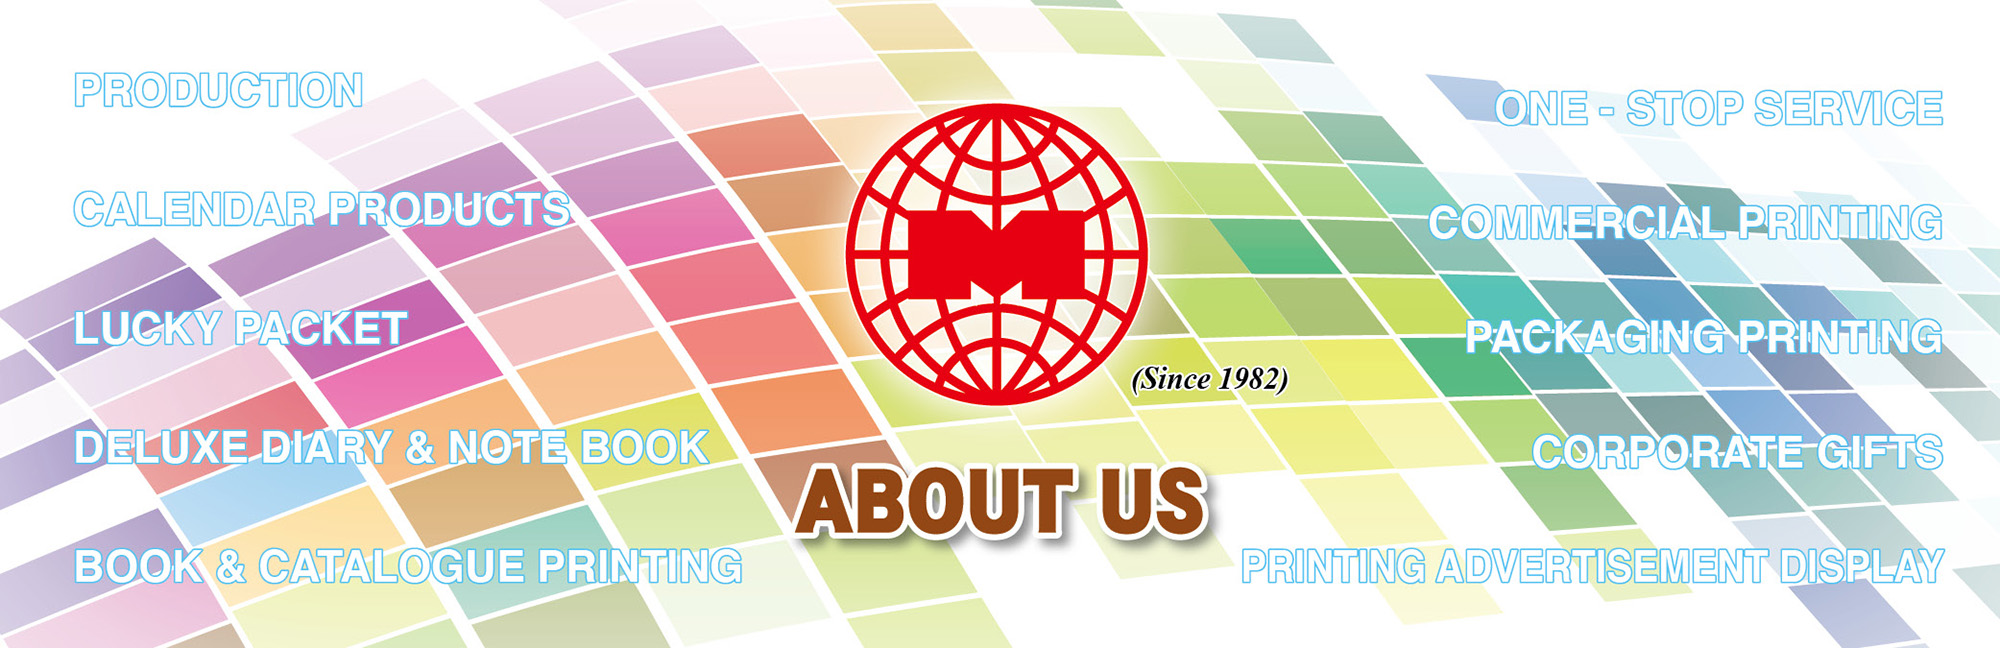 Tell people to know about us the company nature of Mei Ka Printing & Publishing Enterprise Limited